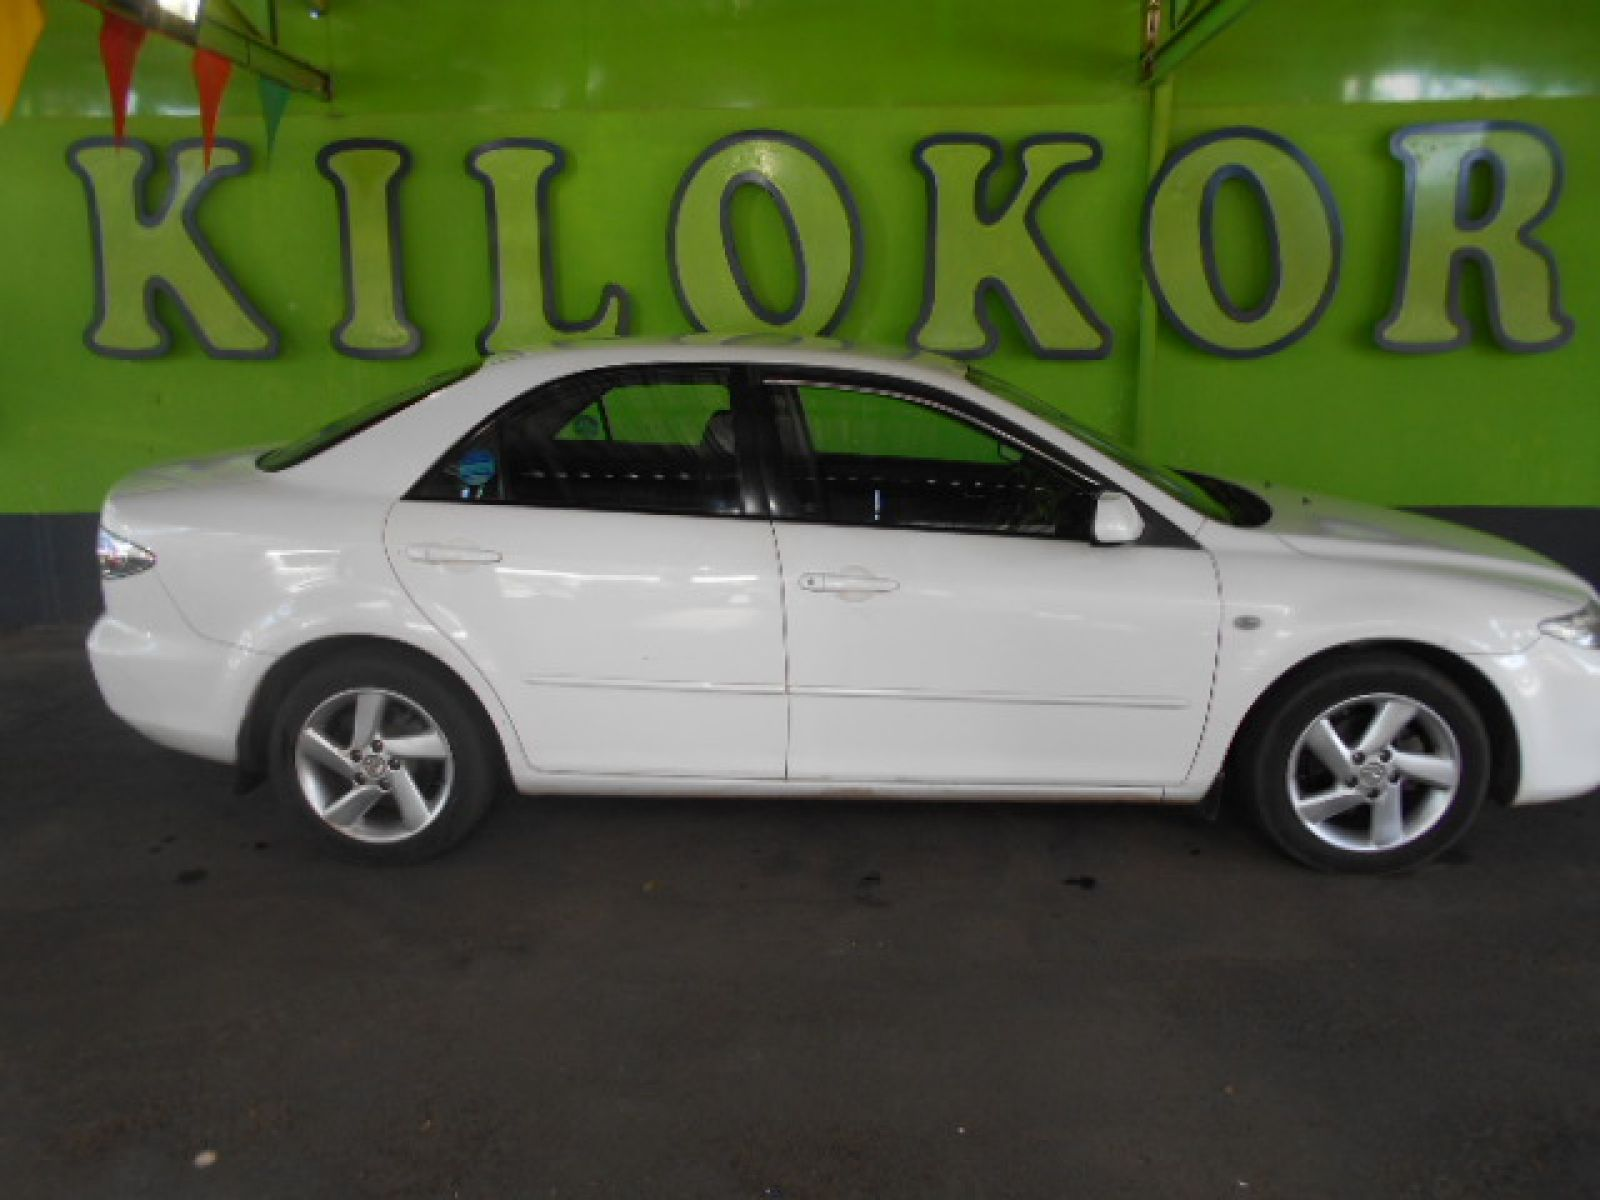 2005 Mazda 6 R 59 990 For Sale Kilokor Motors